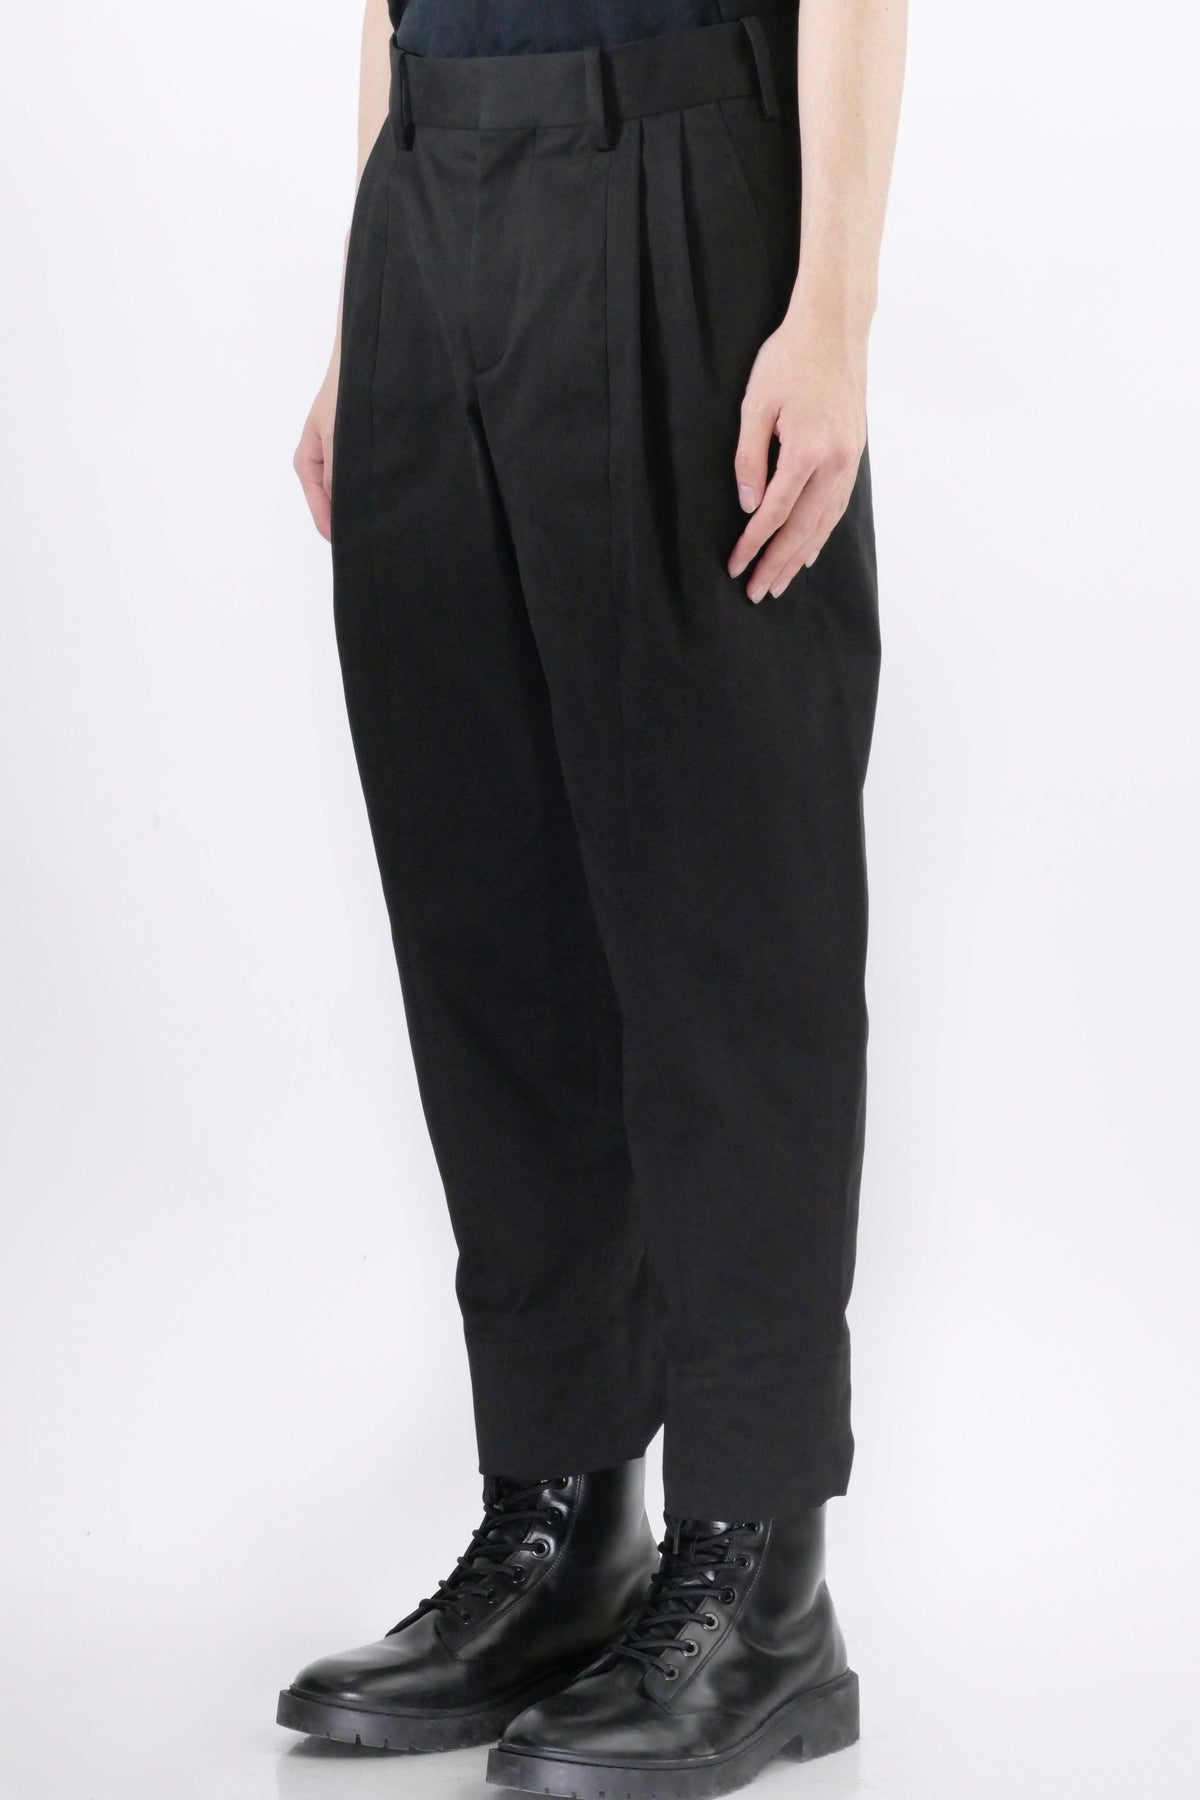 Neil Barrett 2 Pleat Trousers Black